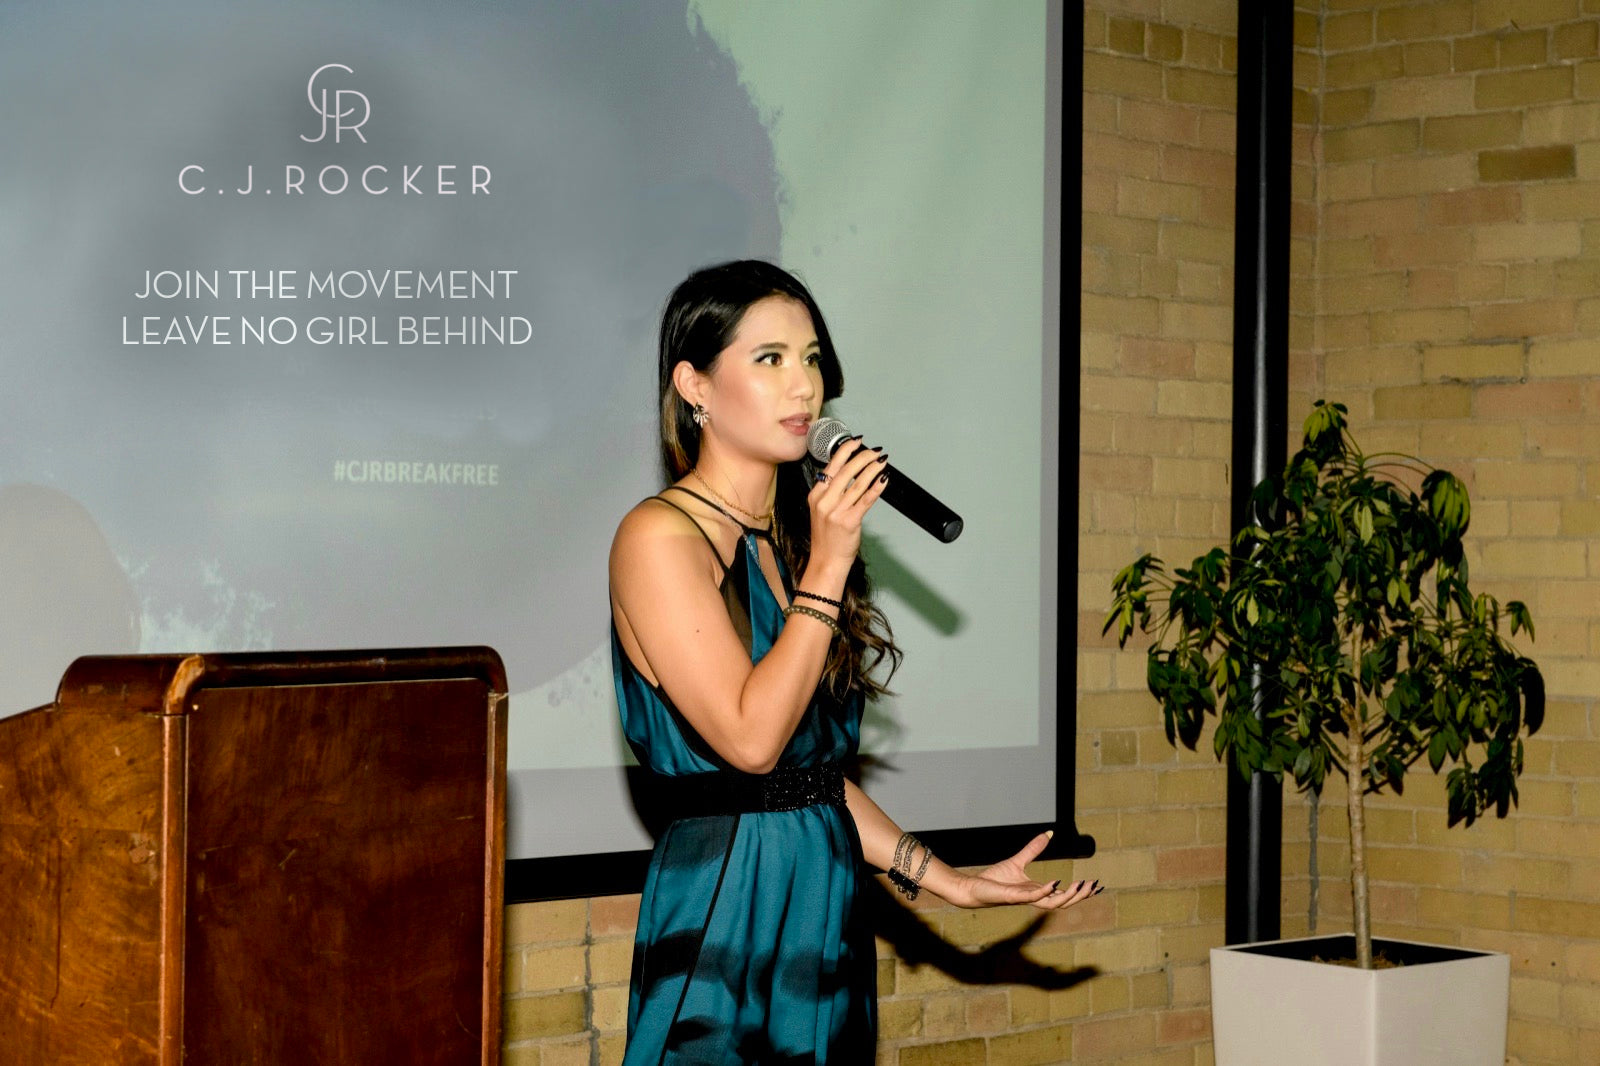 The C.J.ROCKER BREAK FREE Gala